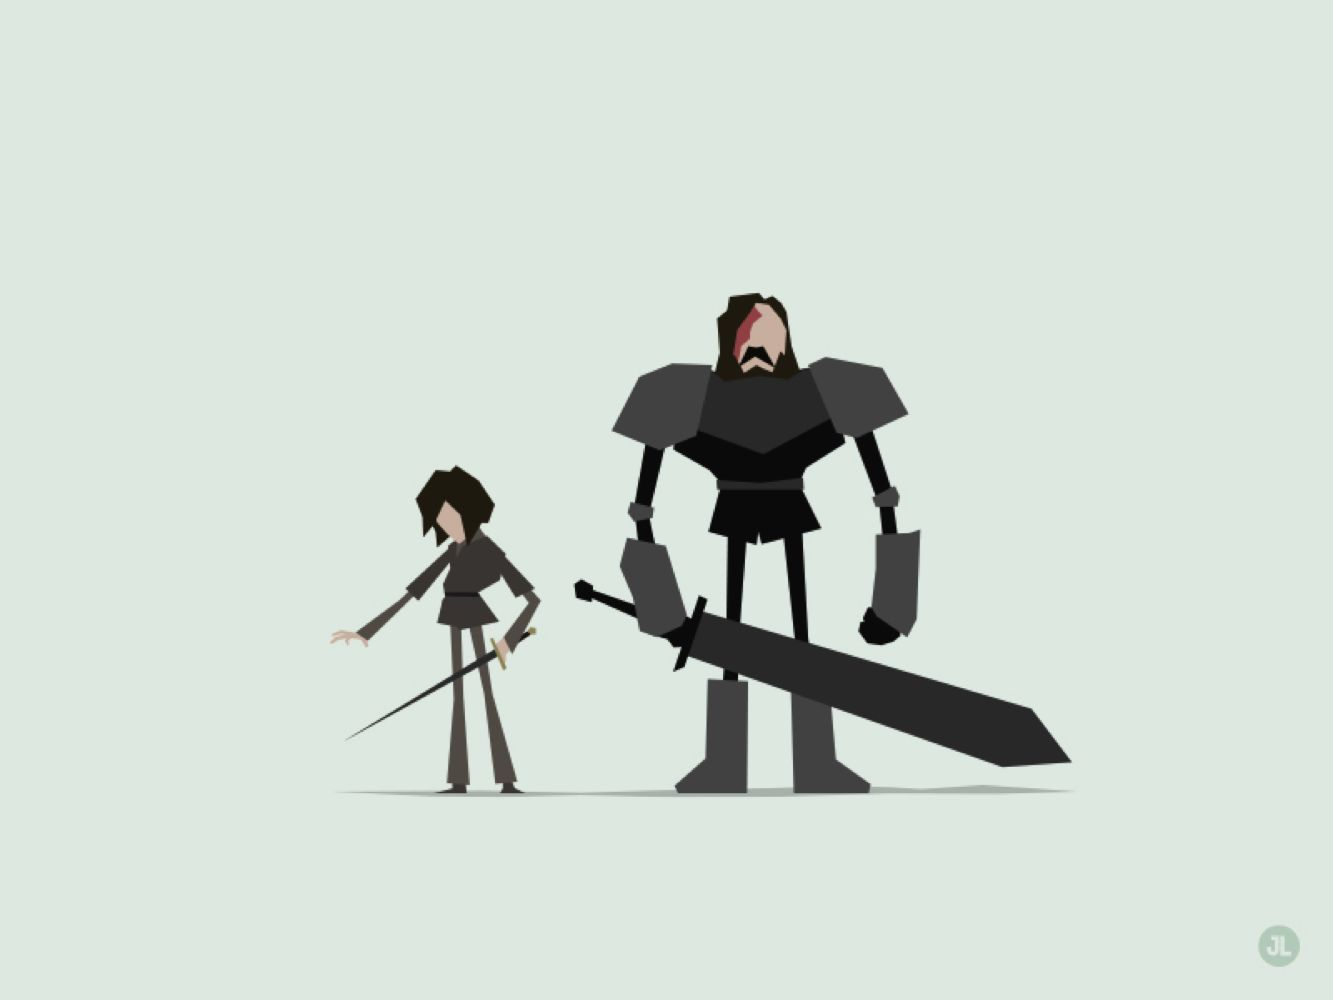 Minimal Game of Thrones by Jerry Liu